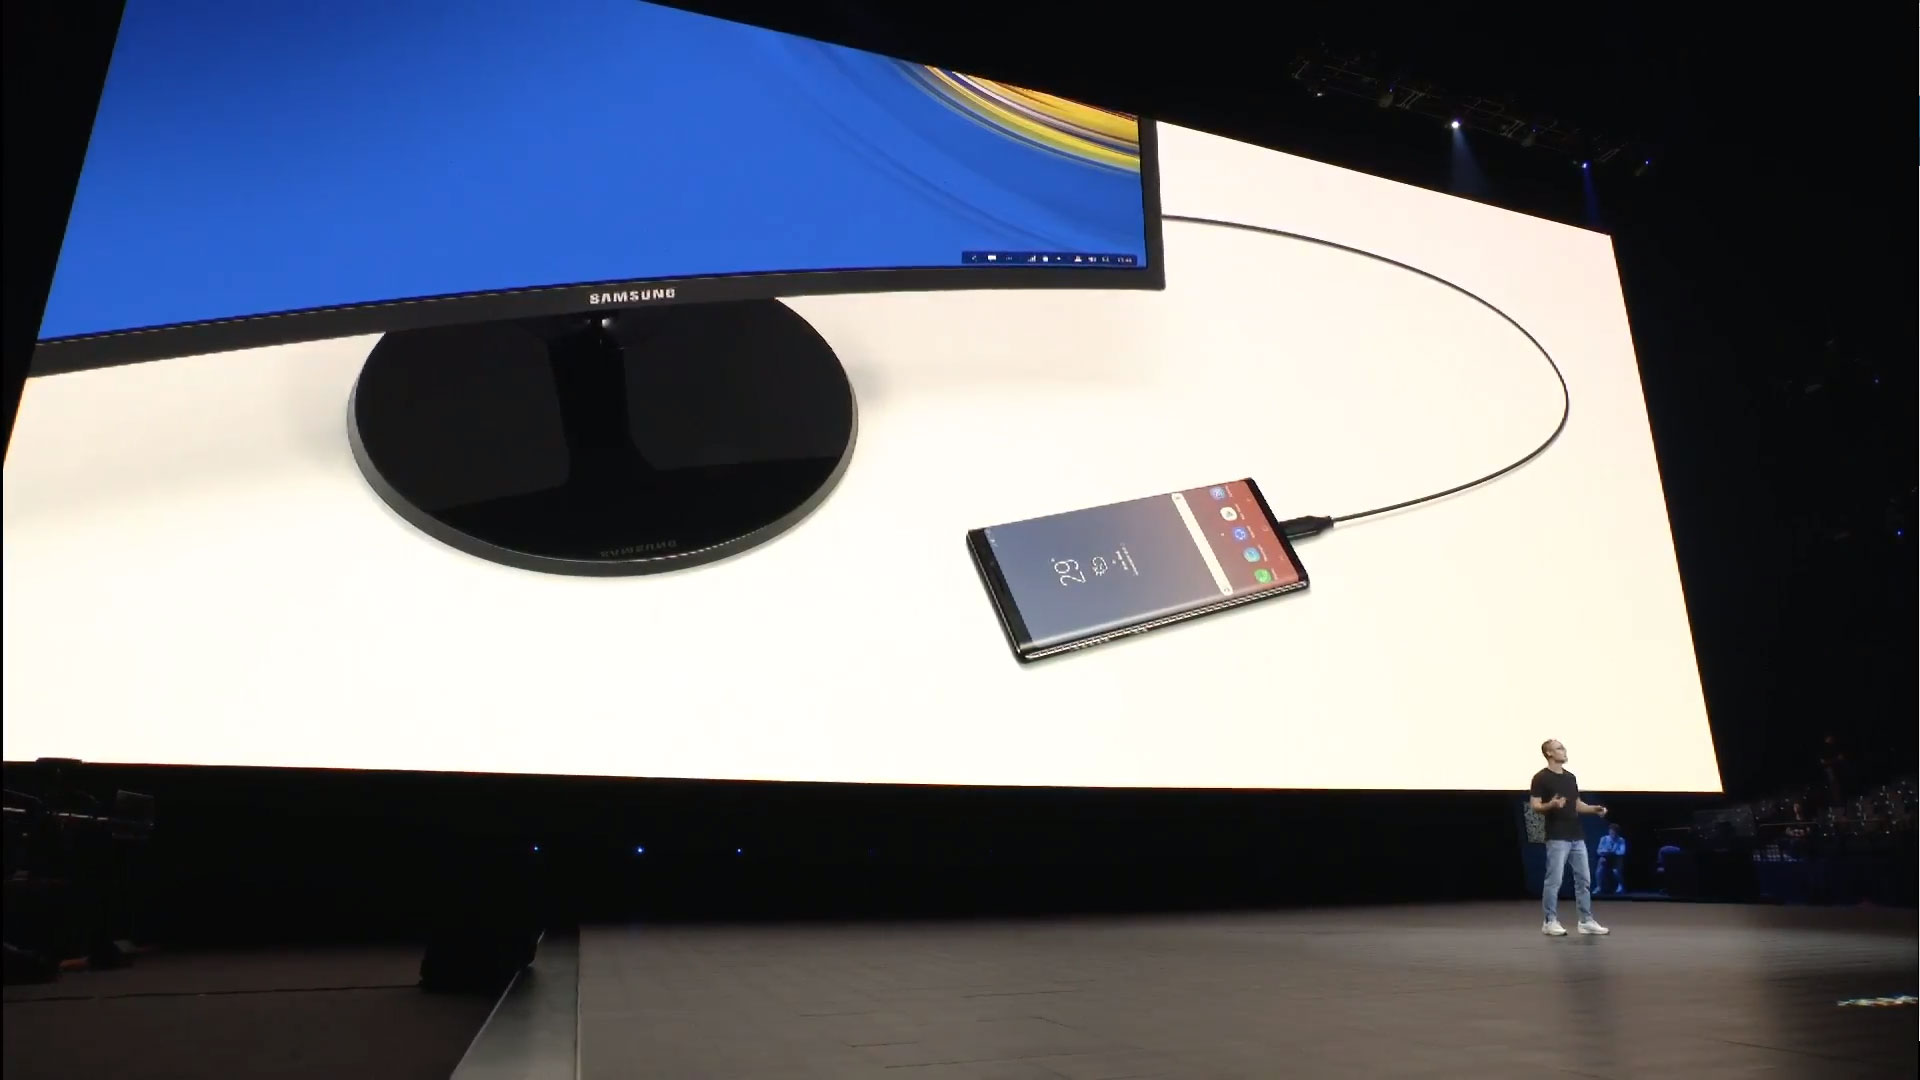 Could a Samsung Galaxy Note 9 actually replace your computer